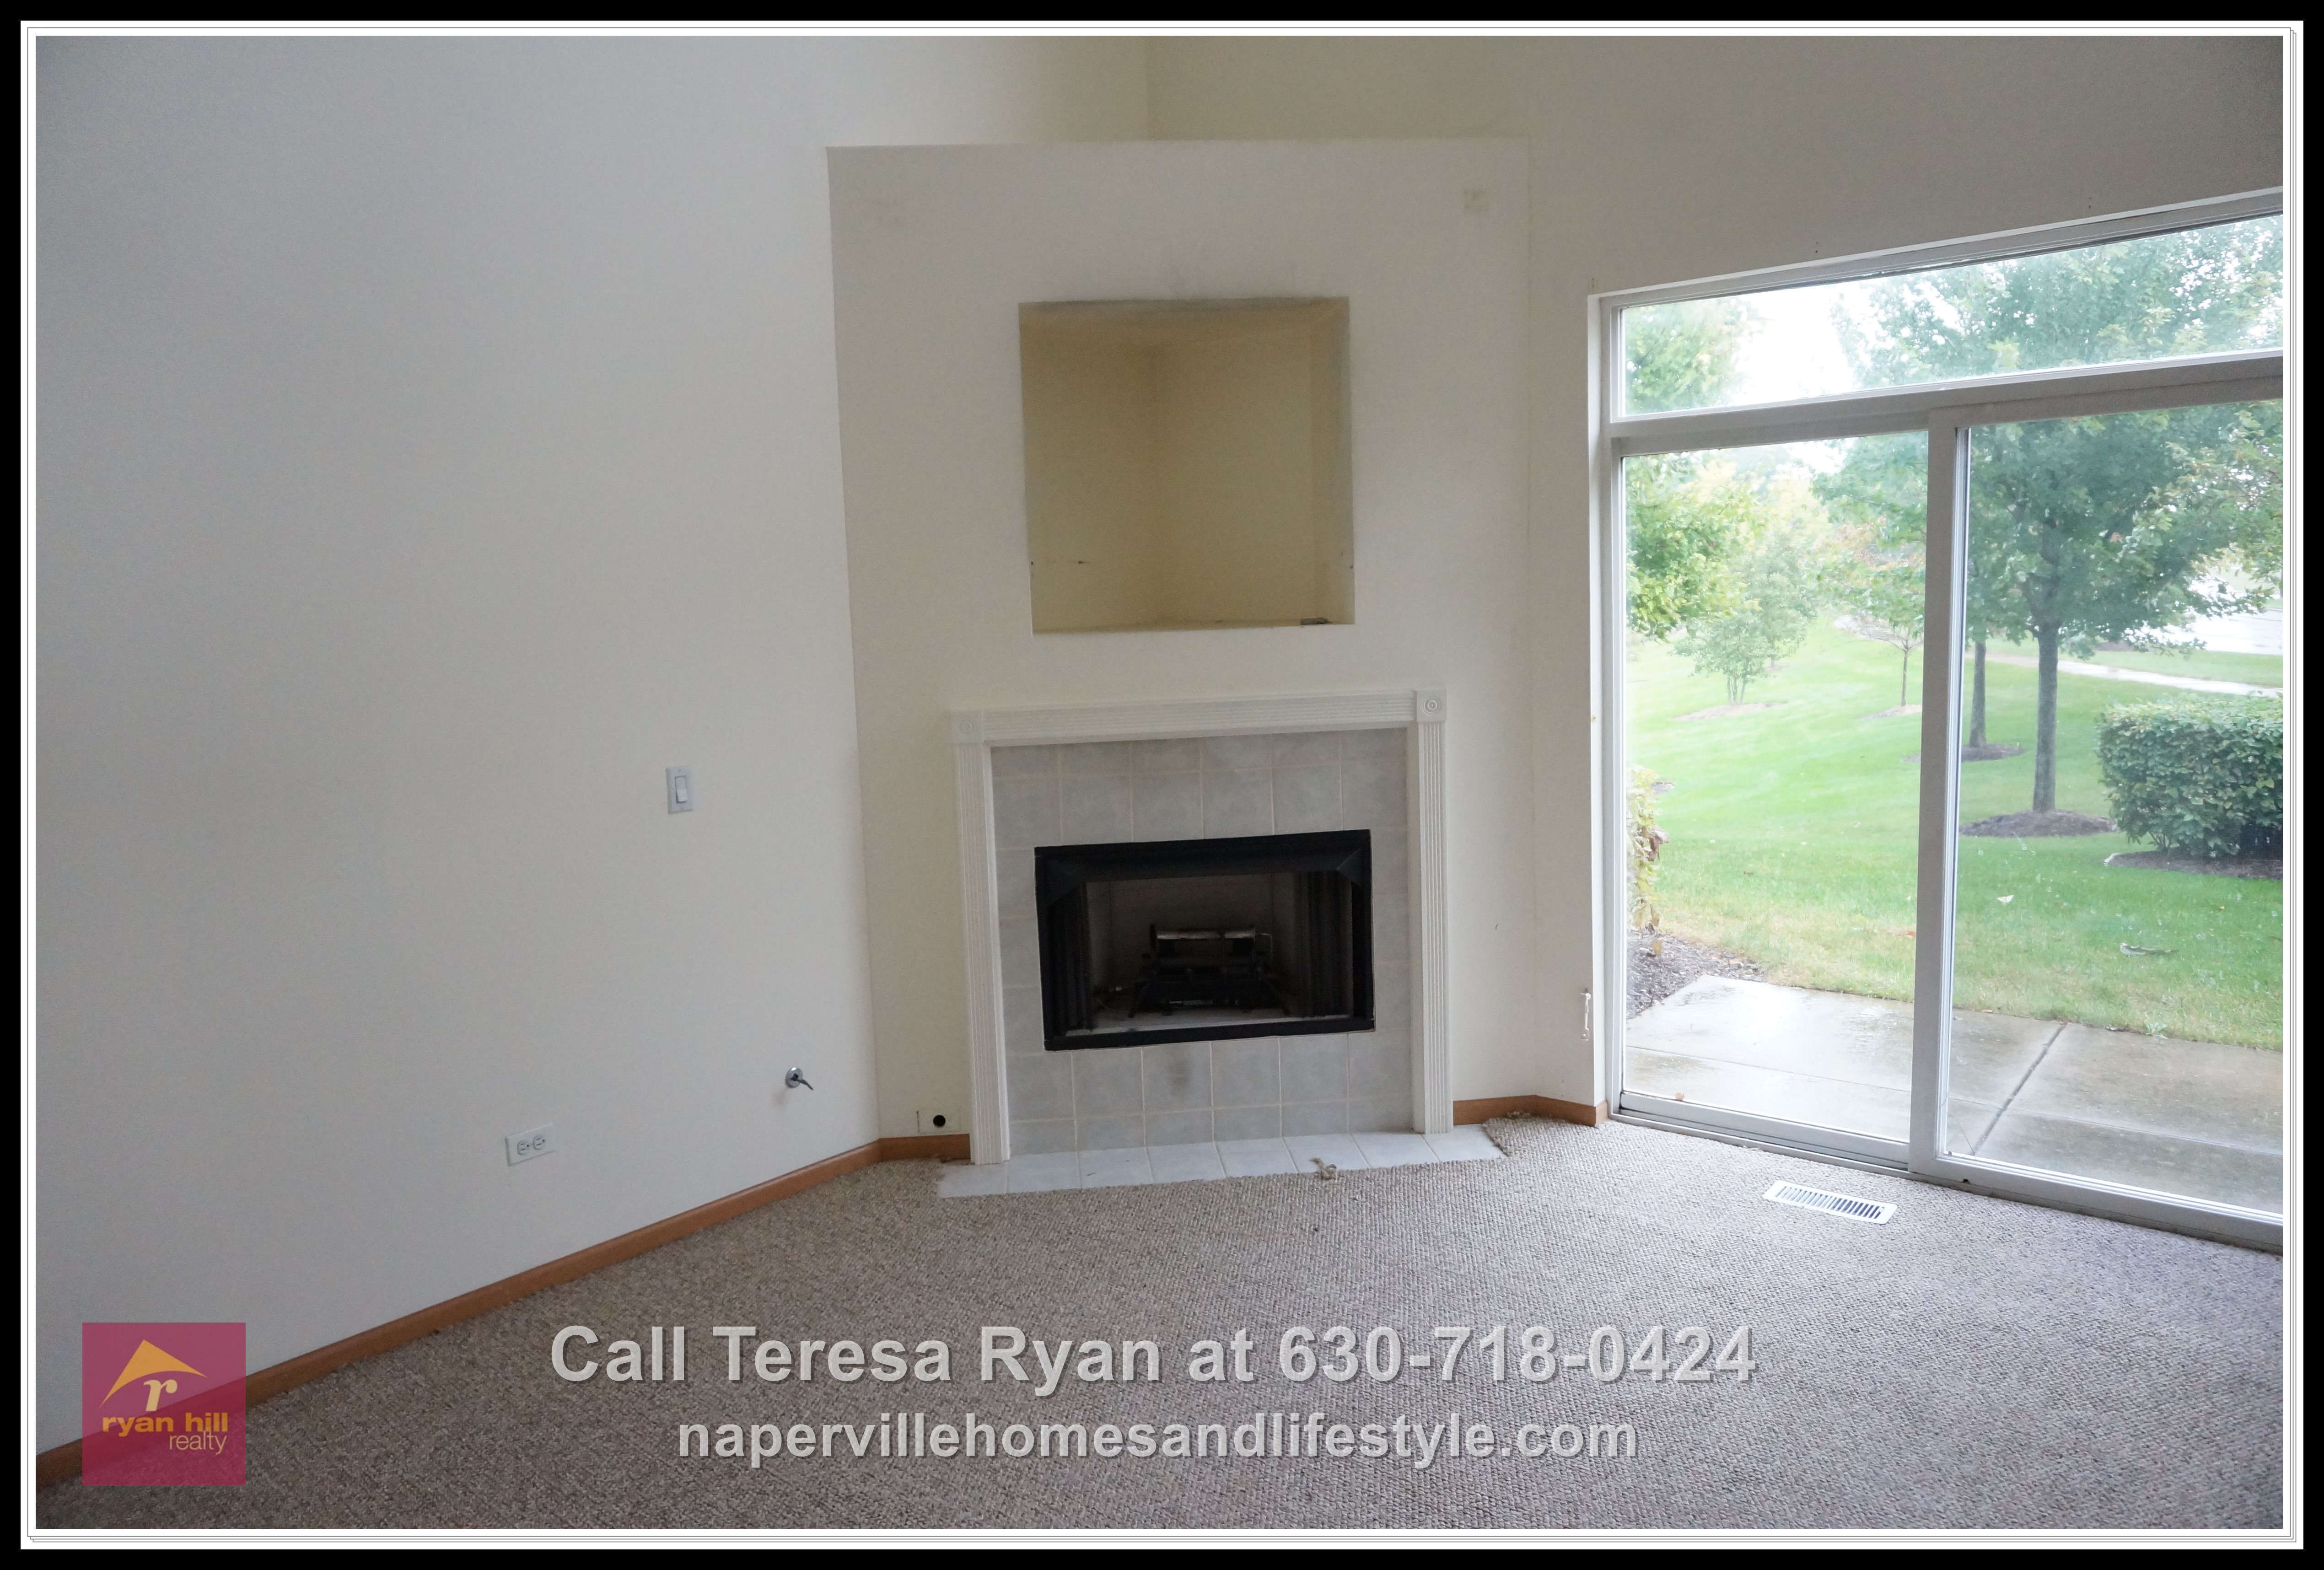 Homes for sale in Naperville IL - The living room with its gas fireplace and a stunning view of the water is cozy and comfy.